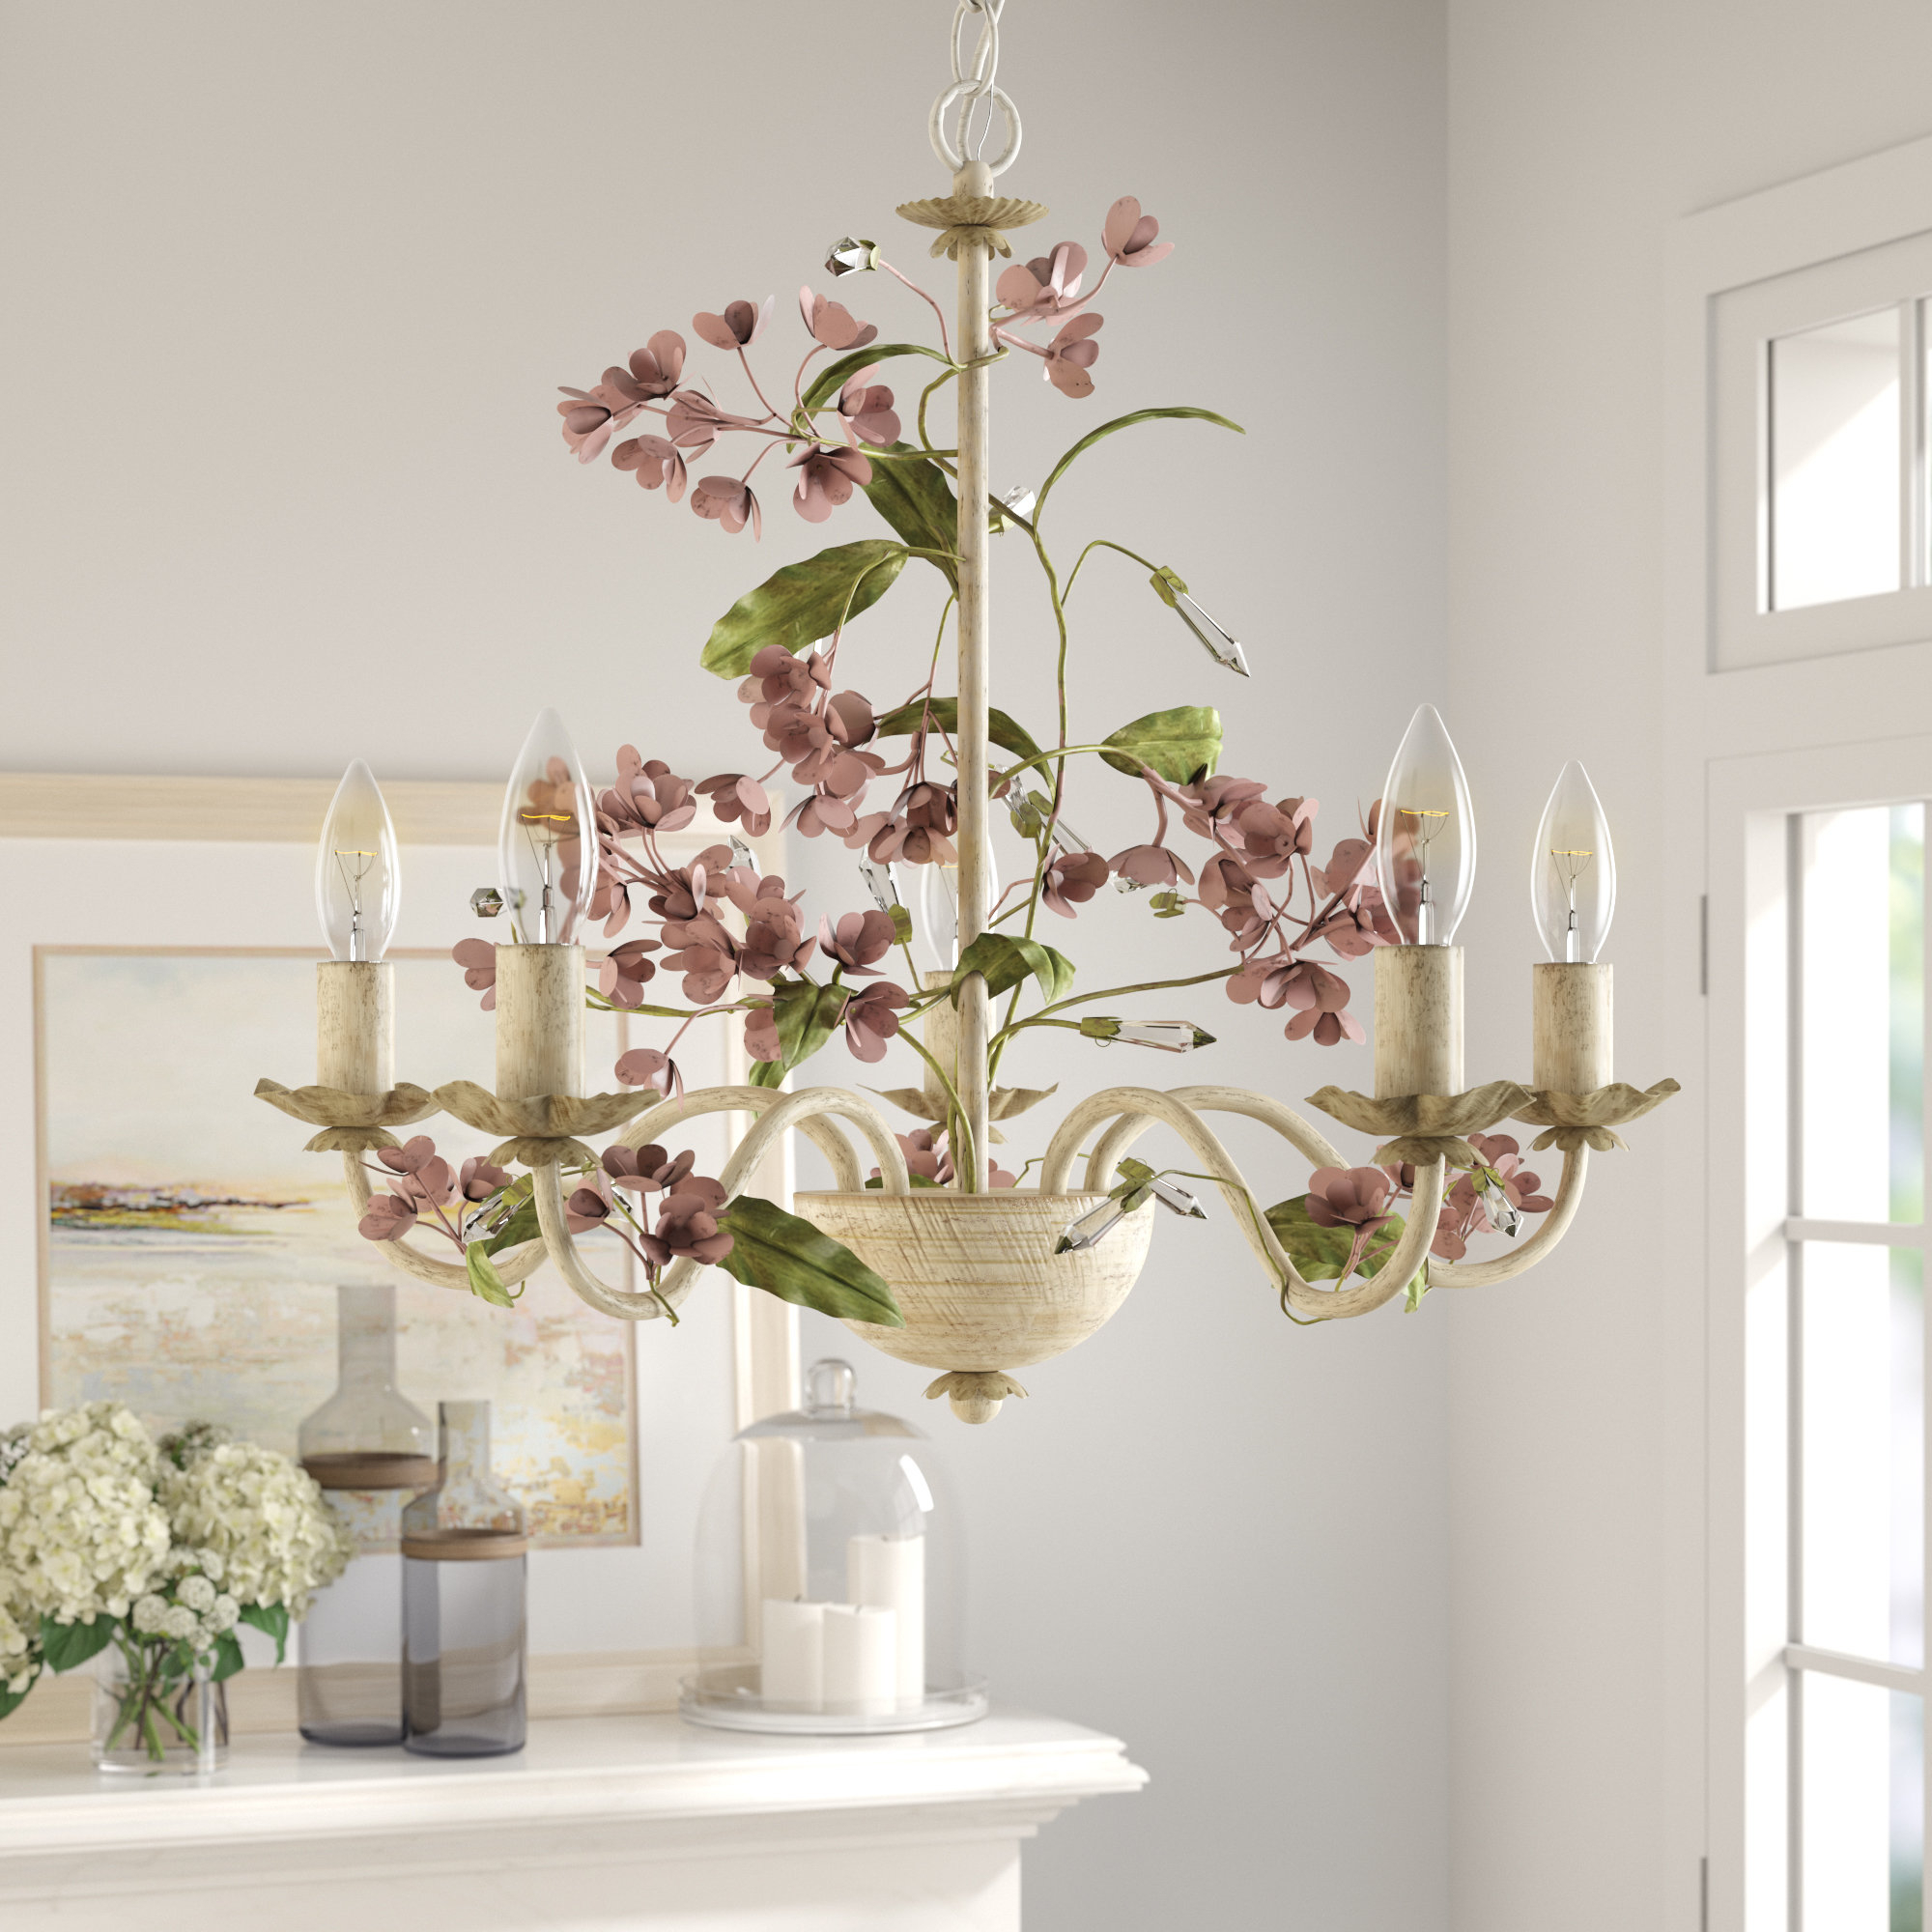 5-Light Candle Style Chandelier throughout Trendy Hesse 5 Light Candle-Style Chandeliers